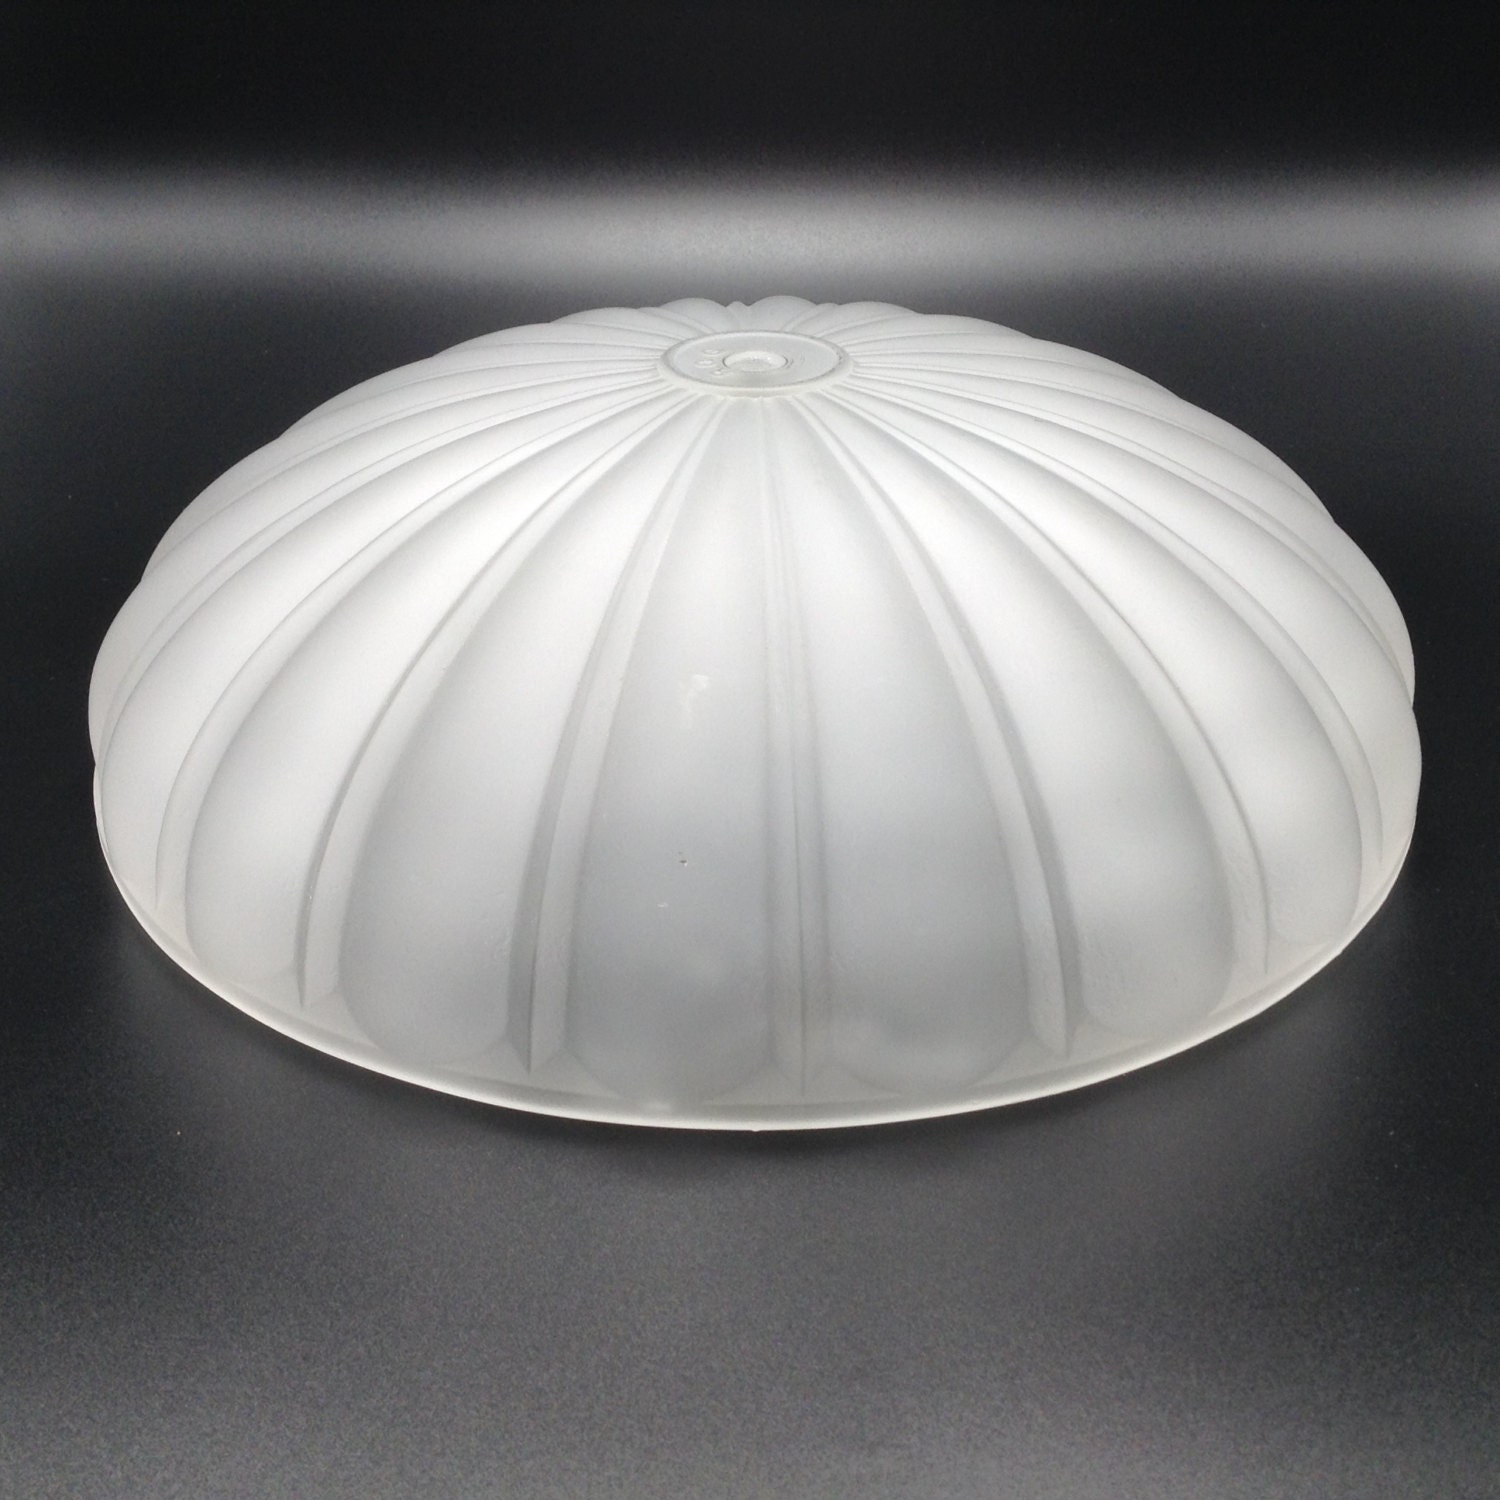 Replacement Globe For Pendant Light Fixture Astonbkkcom: Frosted Ceiling Light Melon Style Globe R.Q.G. Replacement